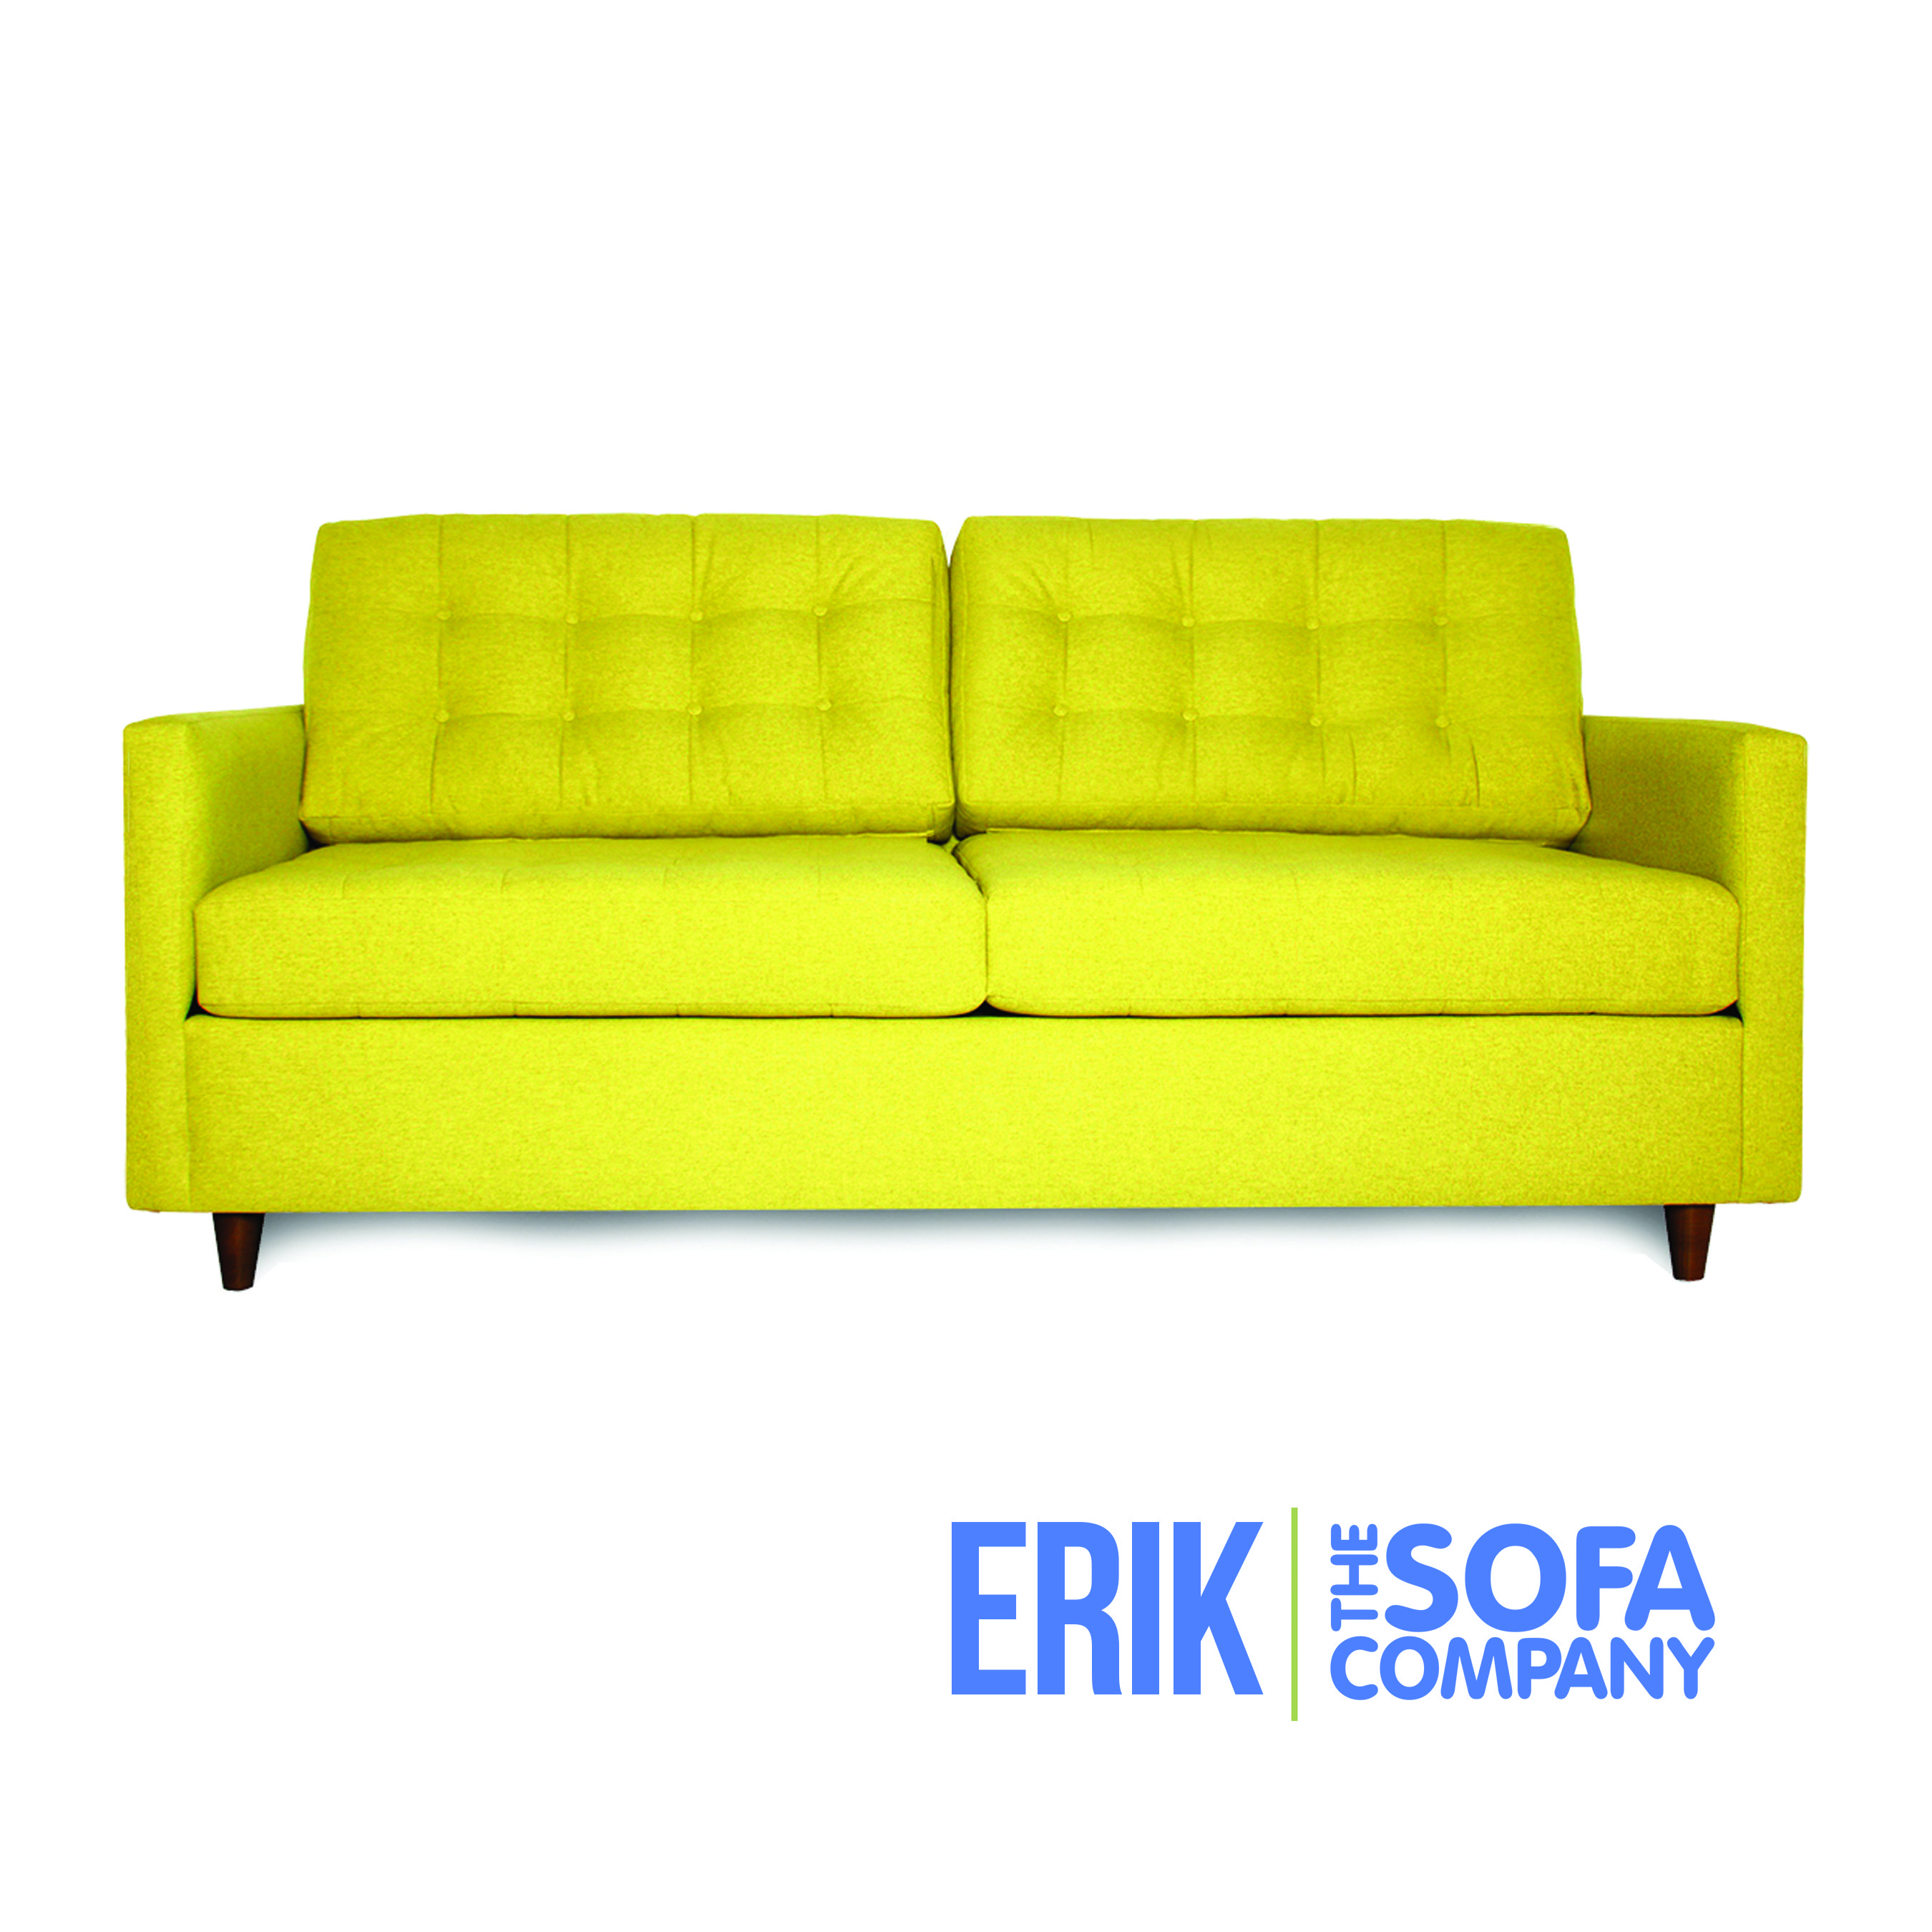 Custom Sectional Sofas Los Angeles Frontier Grey Fabric Sofa Bed Company The Closed 128